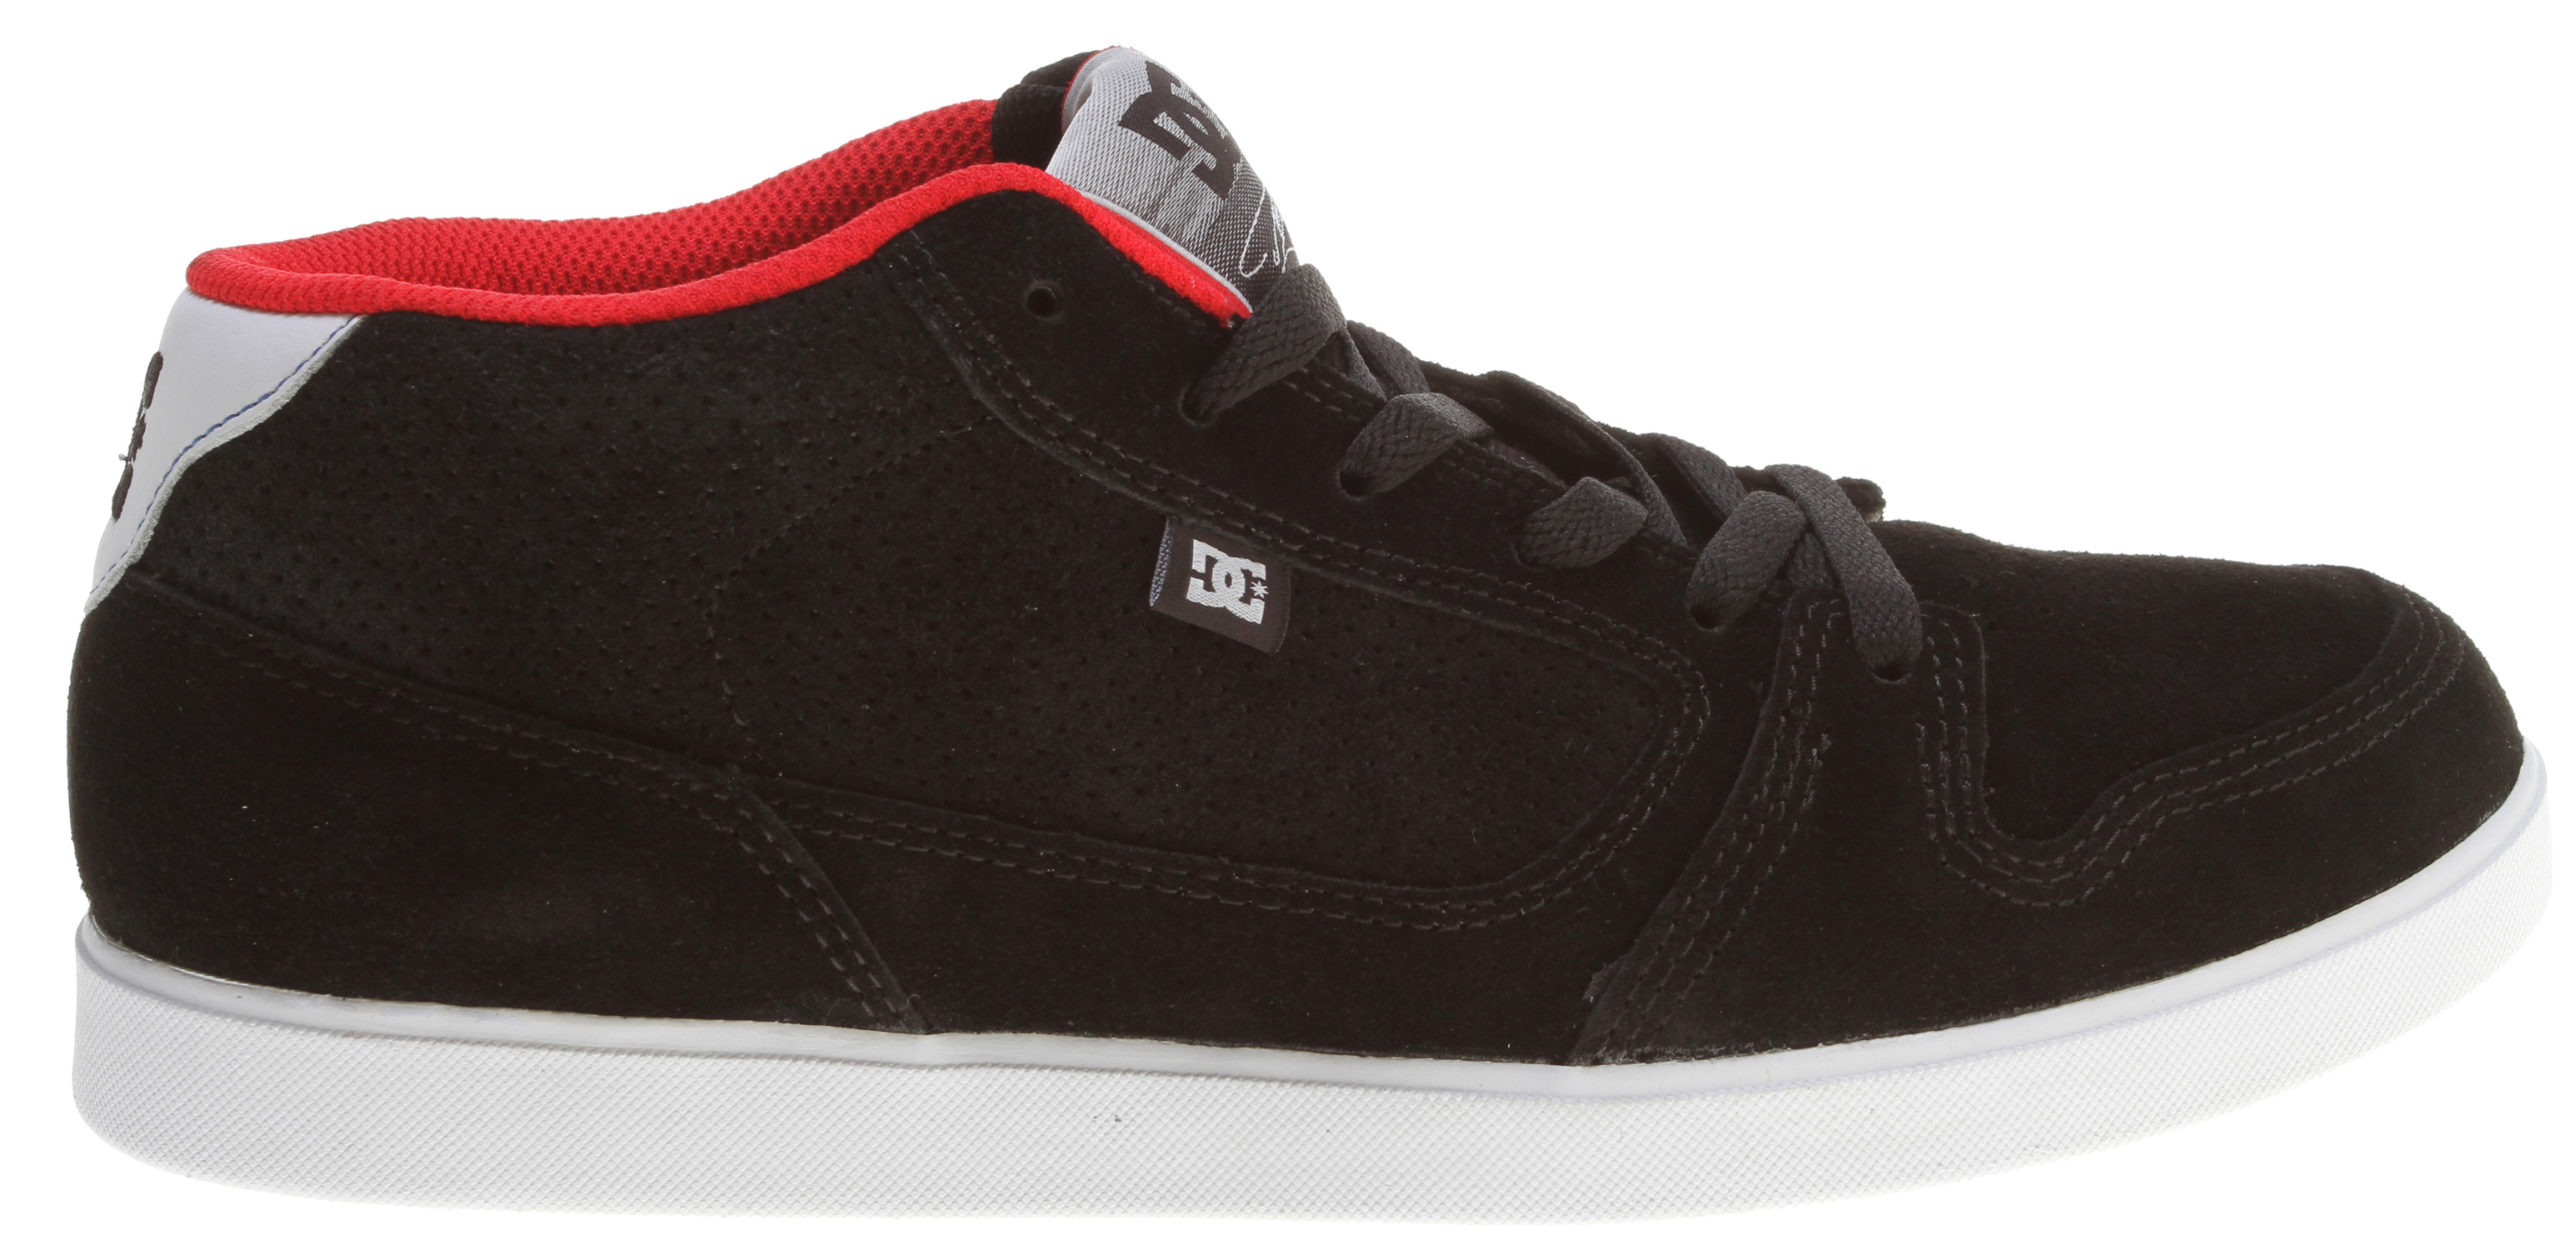 Skateboard What's better than a sharp looking pair of skate shoes  A pair of sharp looking DC Landau Mid S Skate Shoes, of course. That's because they offer a heavy-duty suede upper with vent holes for maximum breathability, DC's own performance cup sole, a padded tongue and mid collar for top-notch comfort and support, along with a grippy herringbone tread pattern to ensure you always keep your footing.   Color Way by Danny Way    Features Traditional Skate Lines with Vulc Board Feel and Cup Sole Protection   Super Suede    Heavy Duty Suede Upper    Vent Holes in Upper for Increased Airflow   Foam Padded Tongue and Mid Top Collar for Added Comfort and Ankle Support   DC's Performance Cup Sole   Skate Performance Insole   Abrasion-Resistant Sticky Rubber Outsole    Classic Herringbone Tread Pattern - $38.95